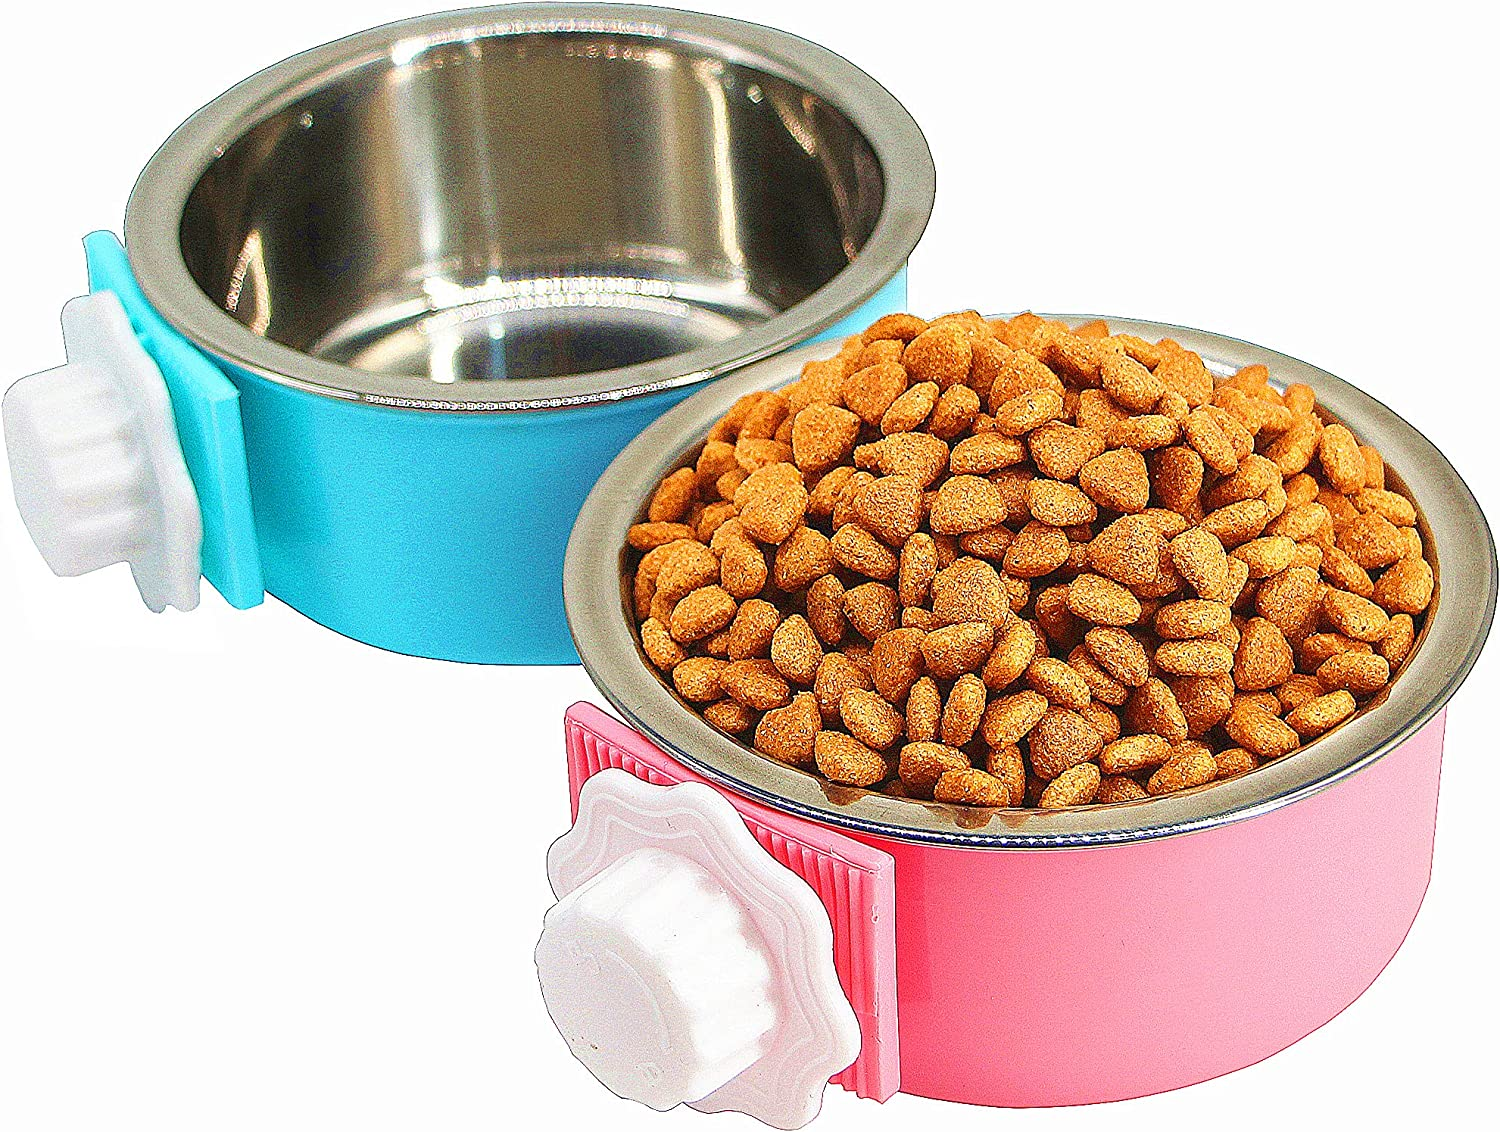 2 Pack Crate Dog Bowl, Removable & Stainless Steel Kennel Water Bowl Hanging Pet Cage Bowl Food and Pink Water Feeder Coop Cup for Puppy Medium Dogs Birds Ferret Cat